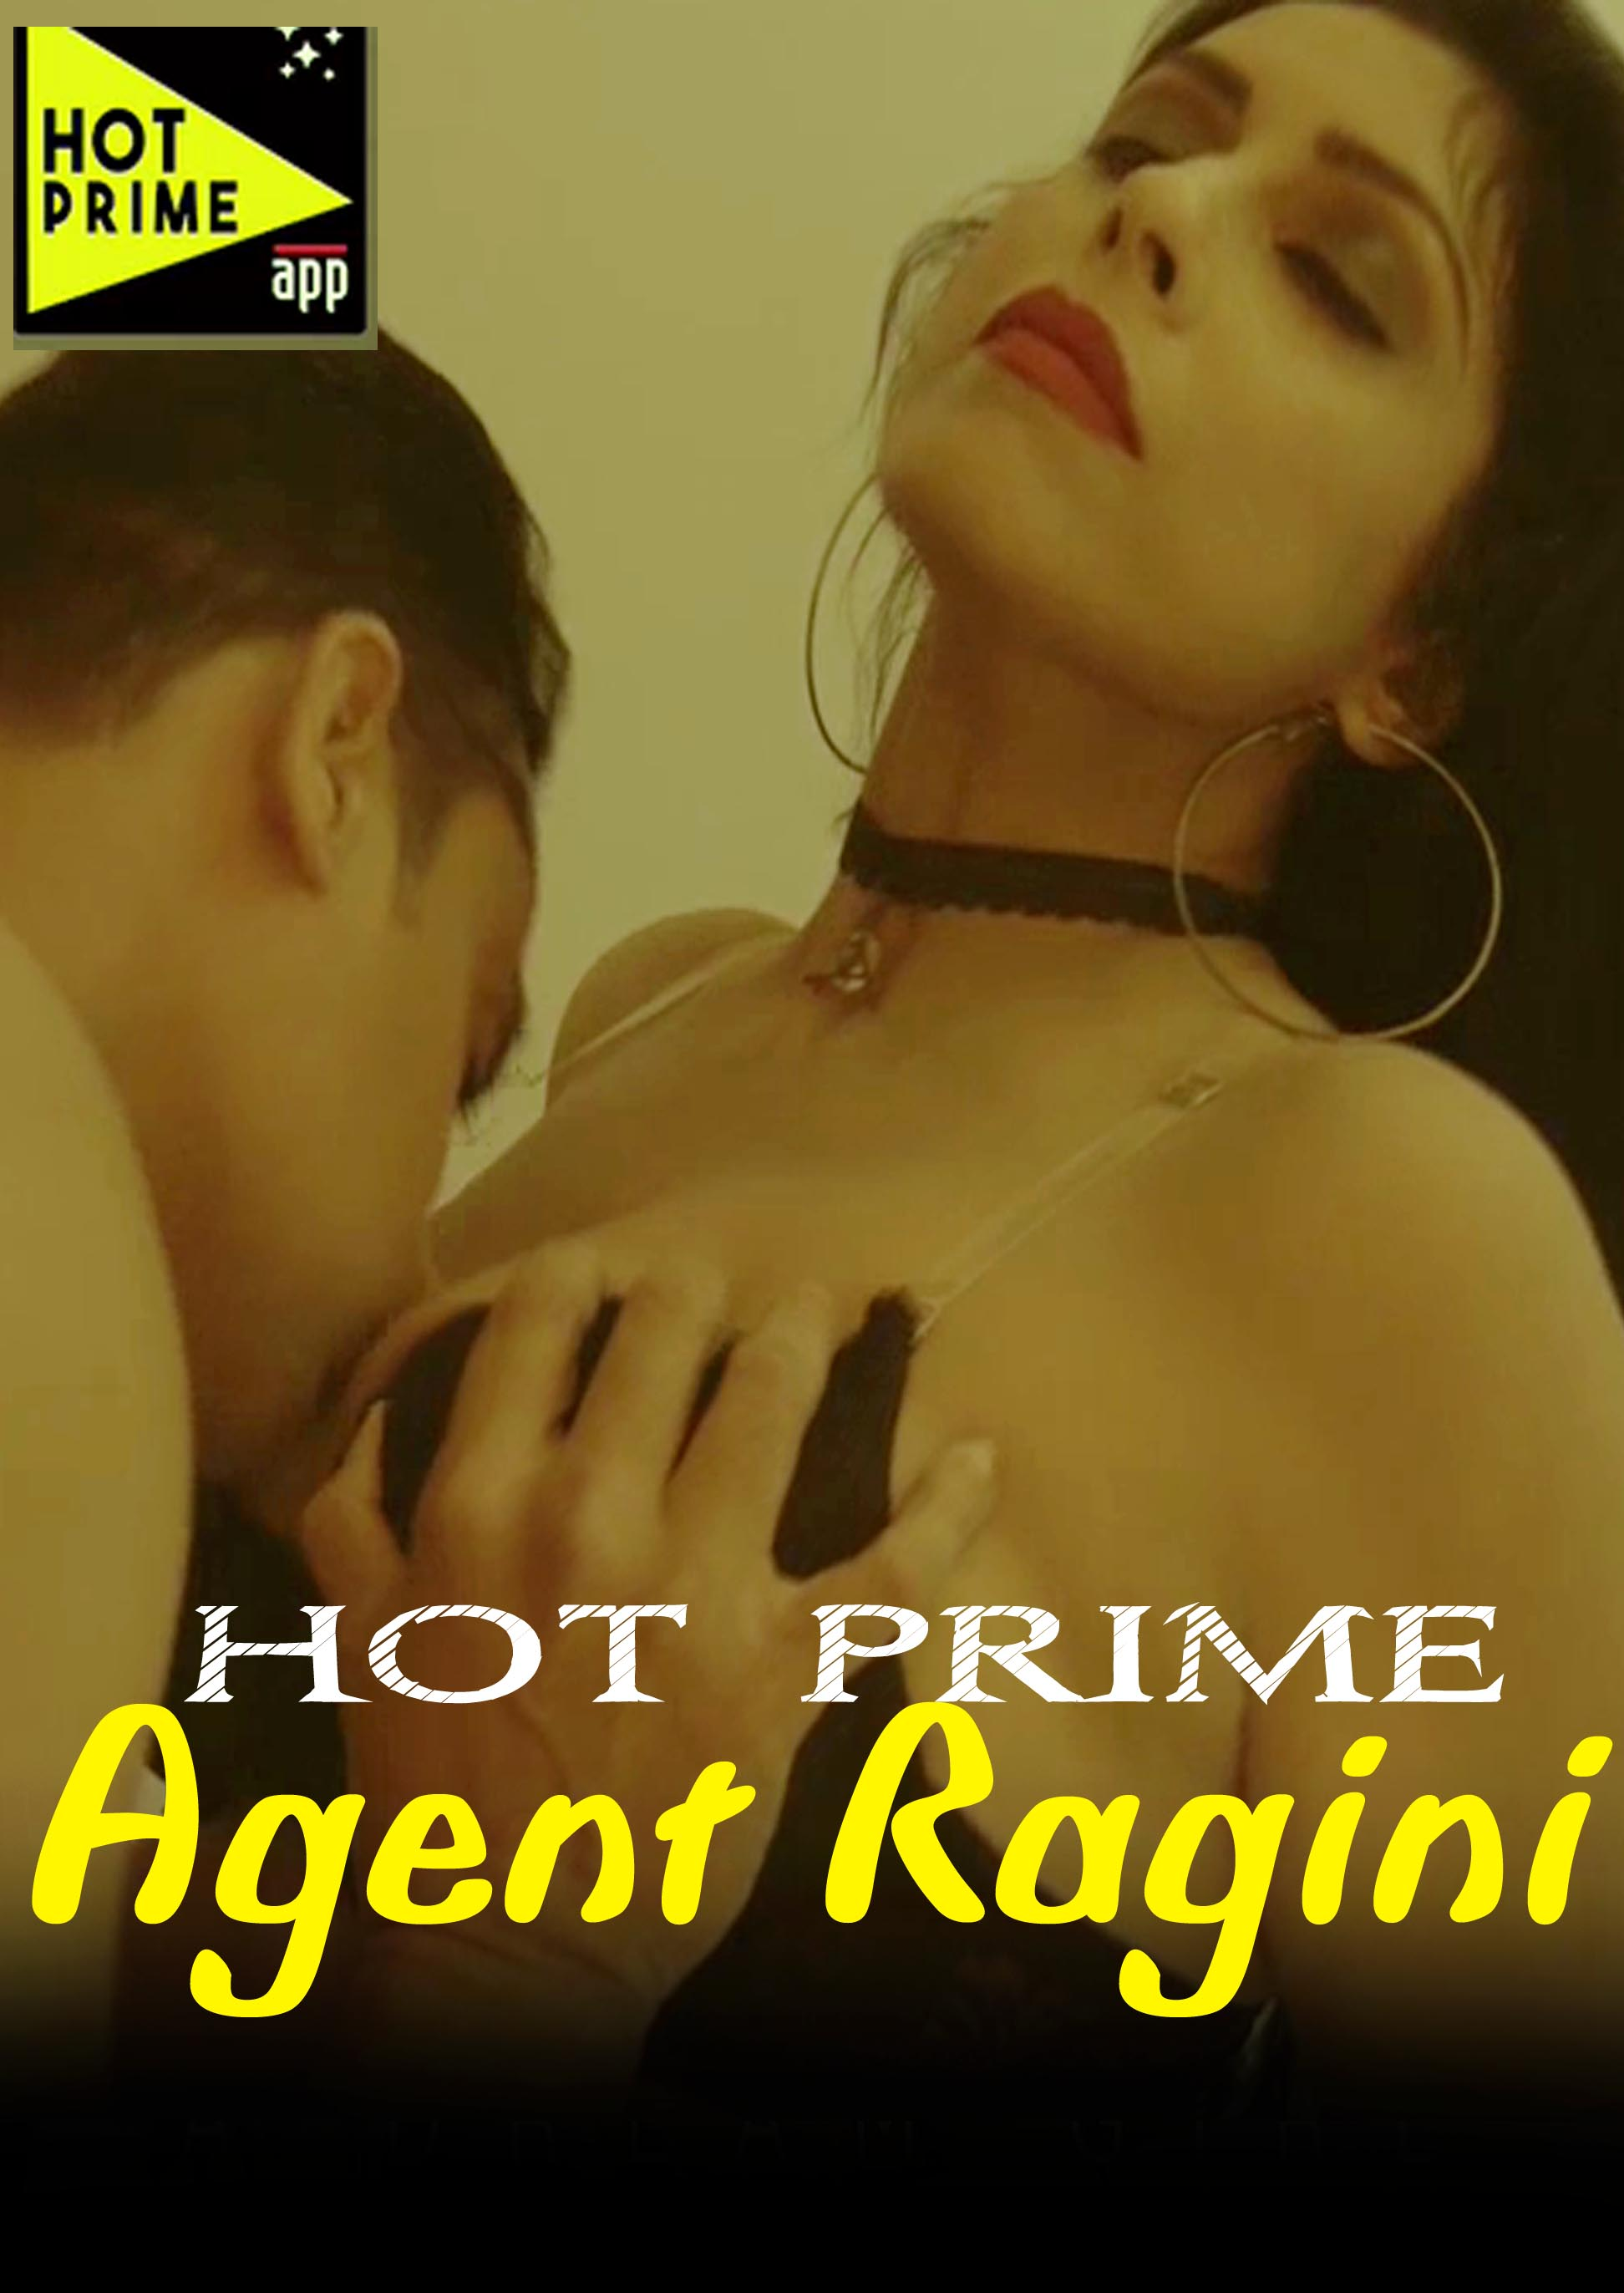 Agent Ragini 2020 HotPrime Originals Hindi Short Film 720p HDRip 150MB Download